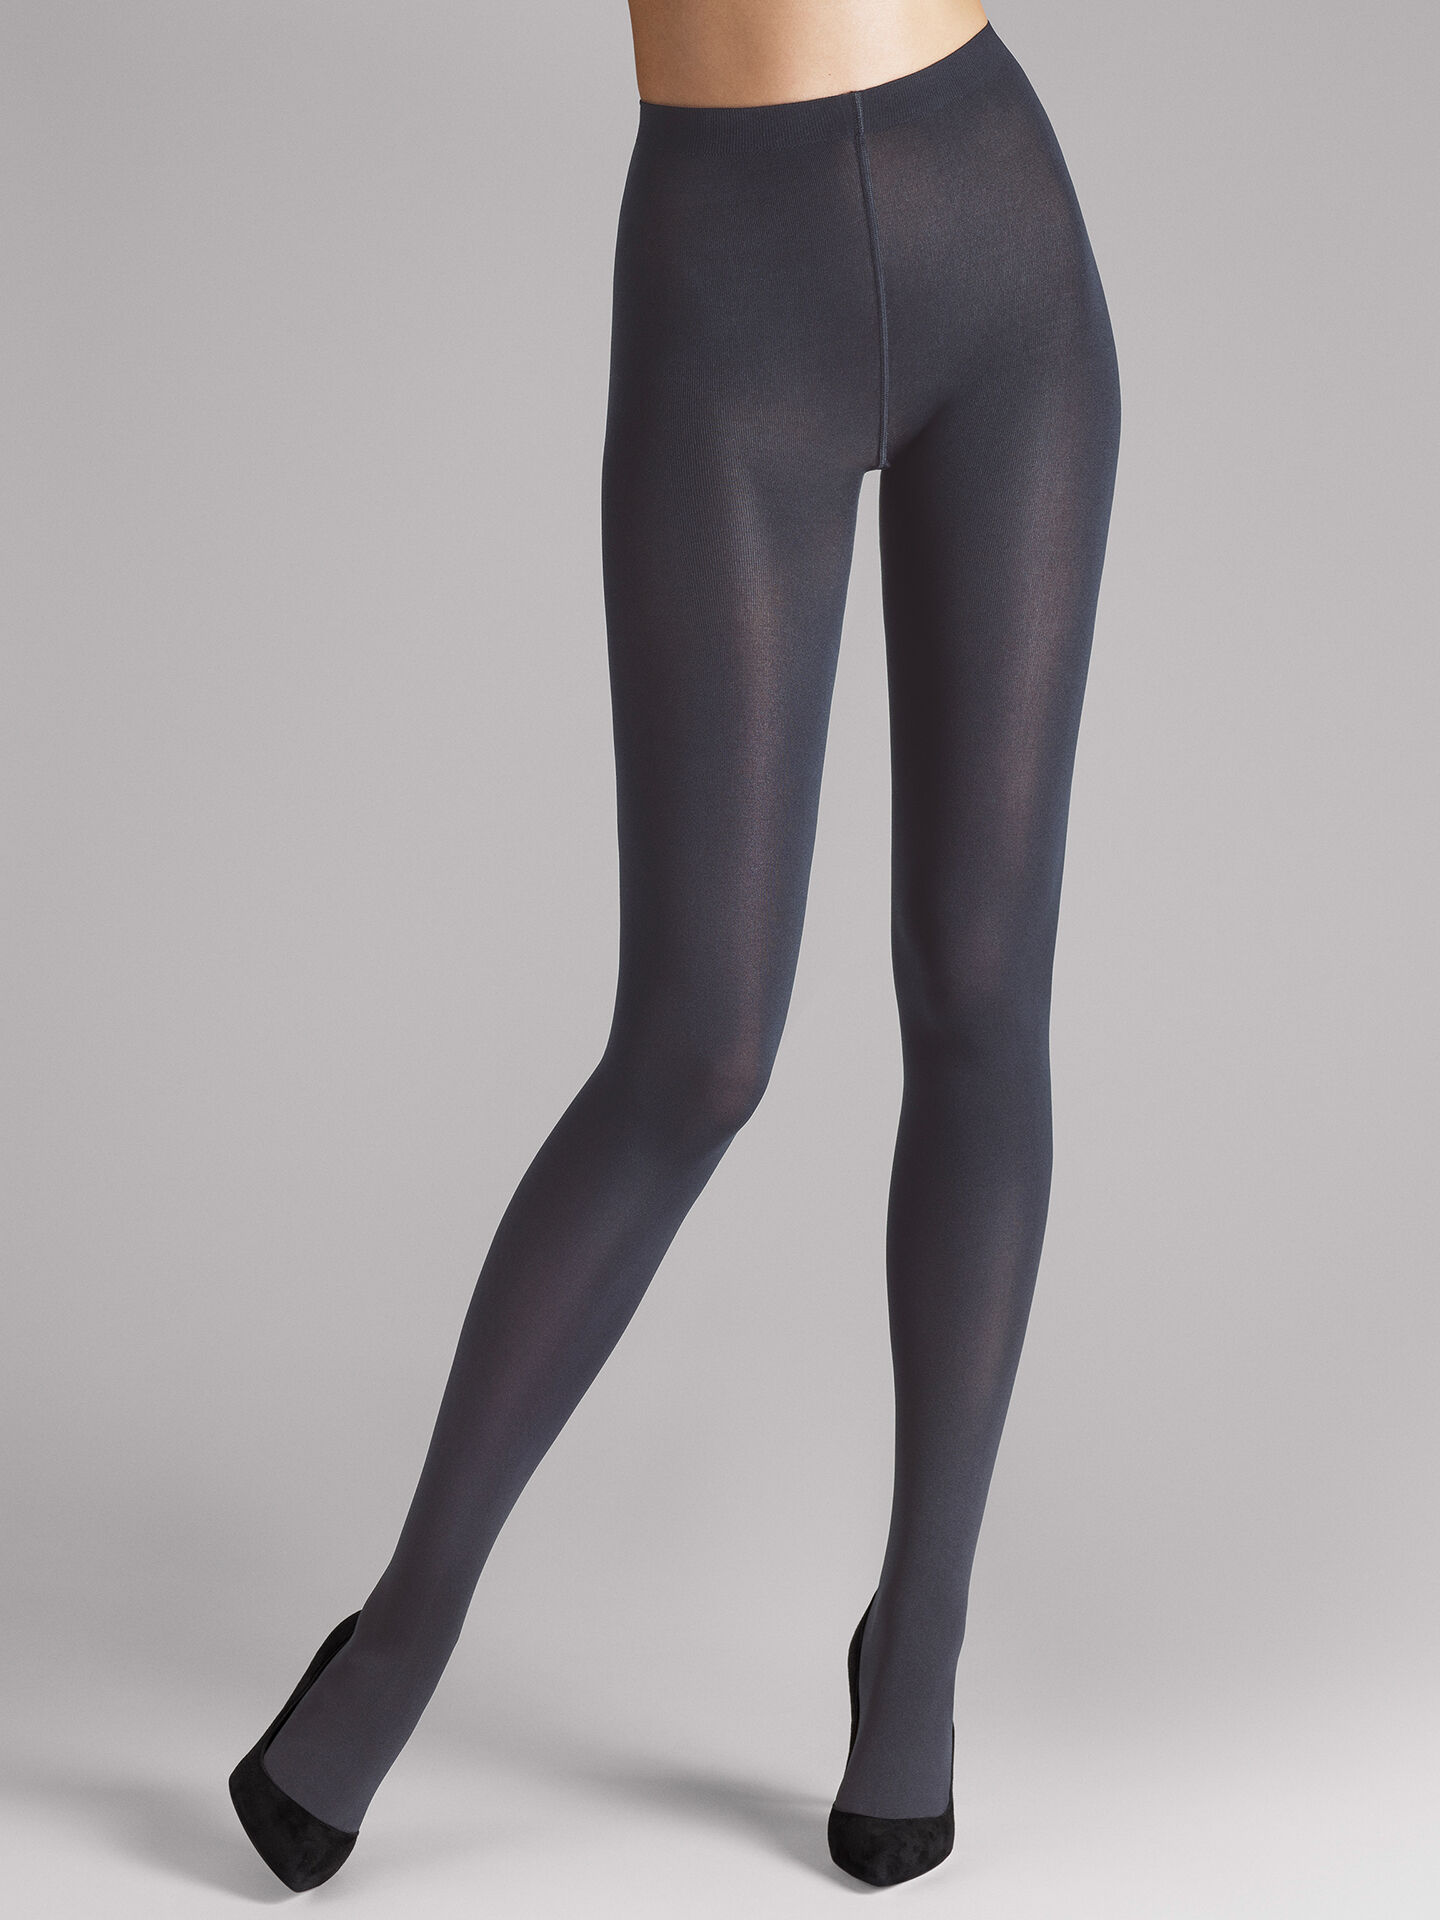 Womens Mat Opaque 80 Tights Wolford Buy Cheap 100% Authentic Discount Manchester Clearance Pictures Cheap Sale clcyEQh